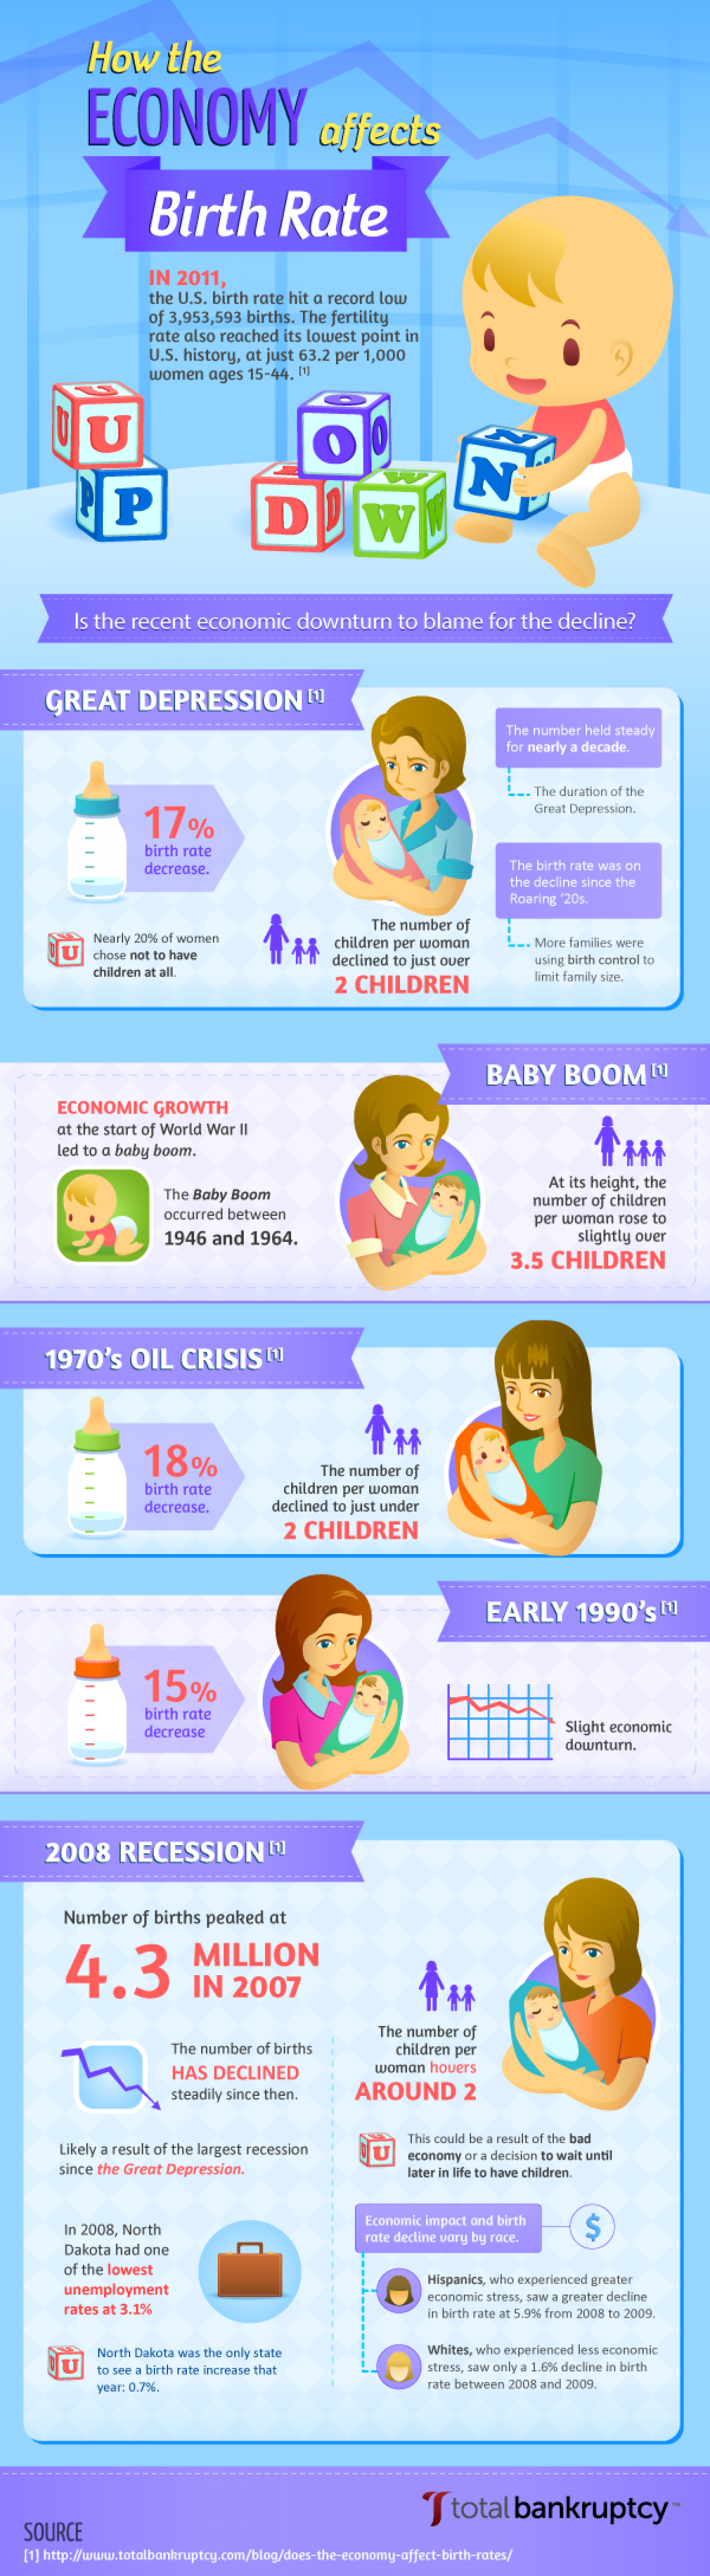 How the Economy Affects Birth Rate Infographic